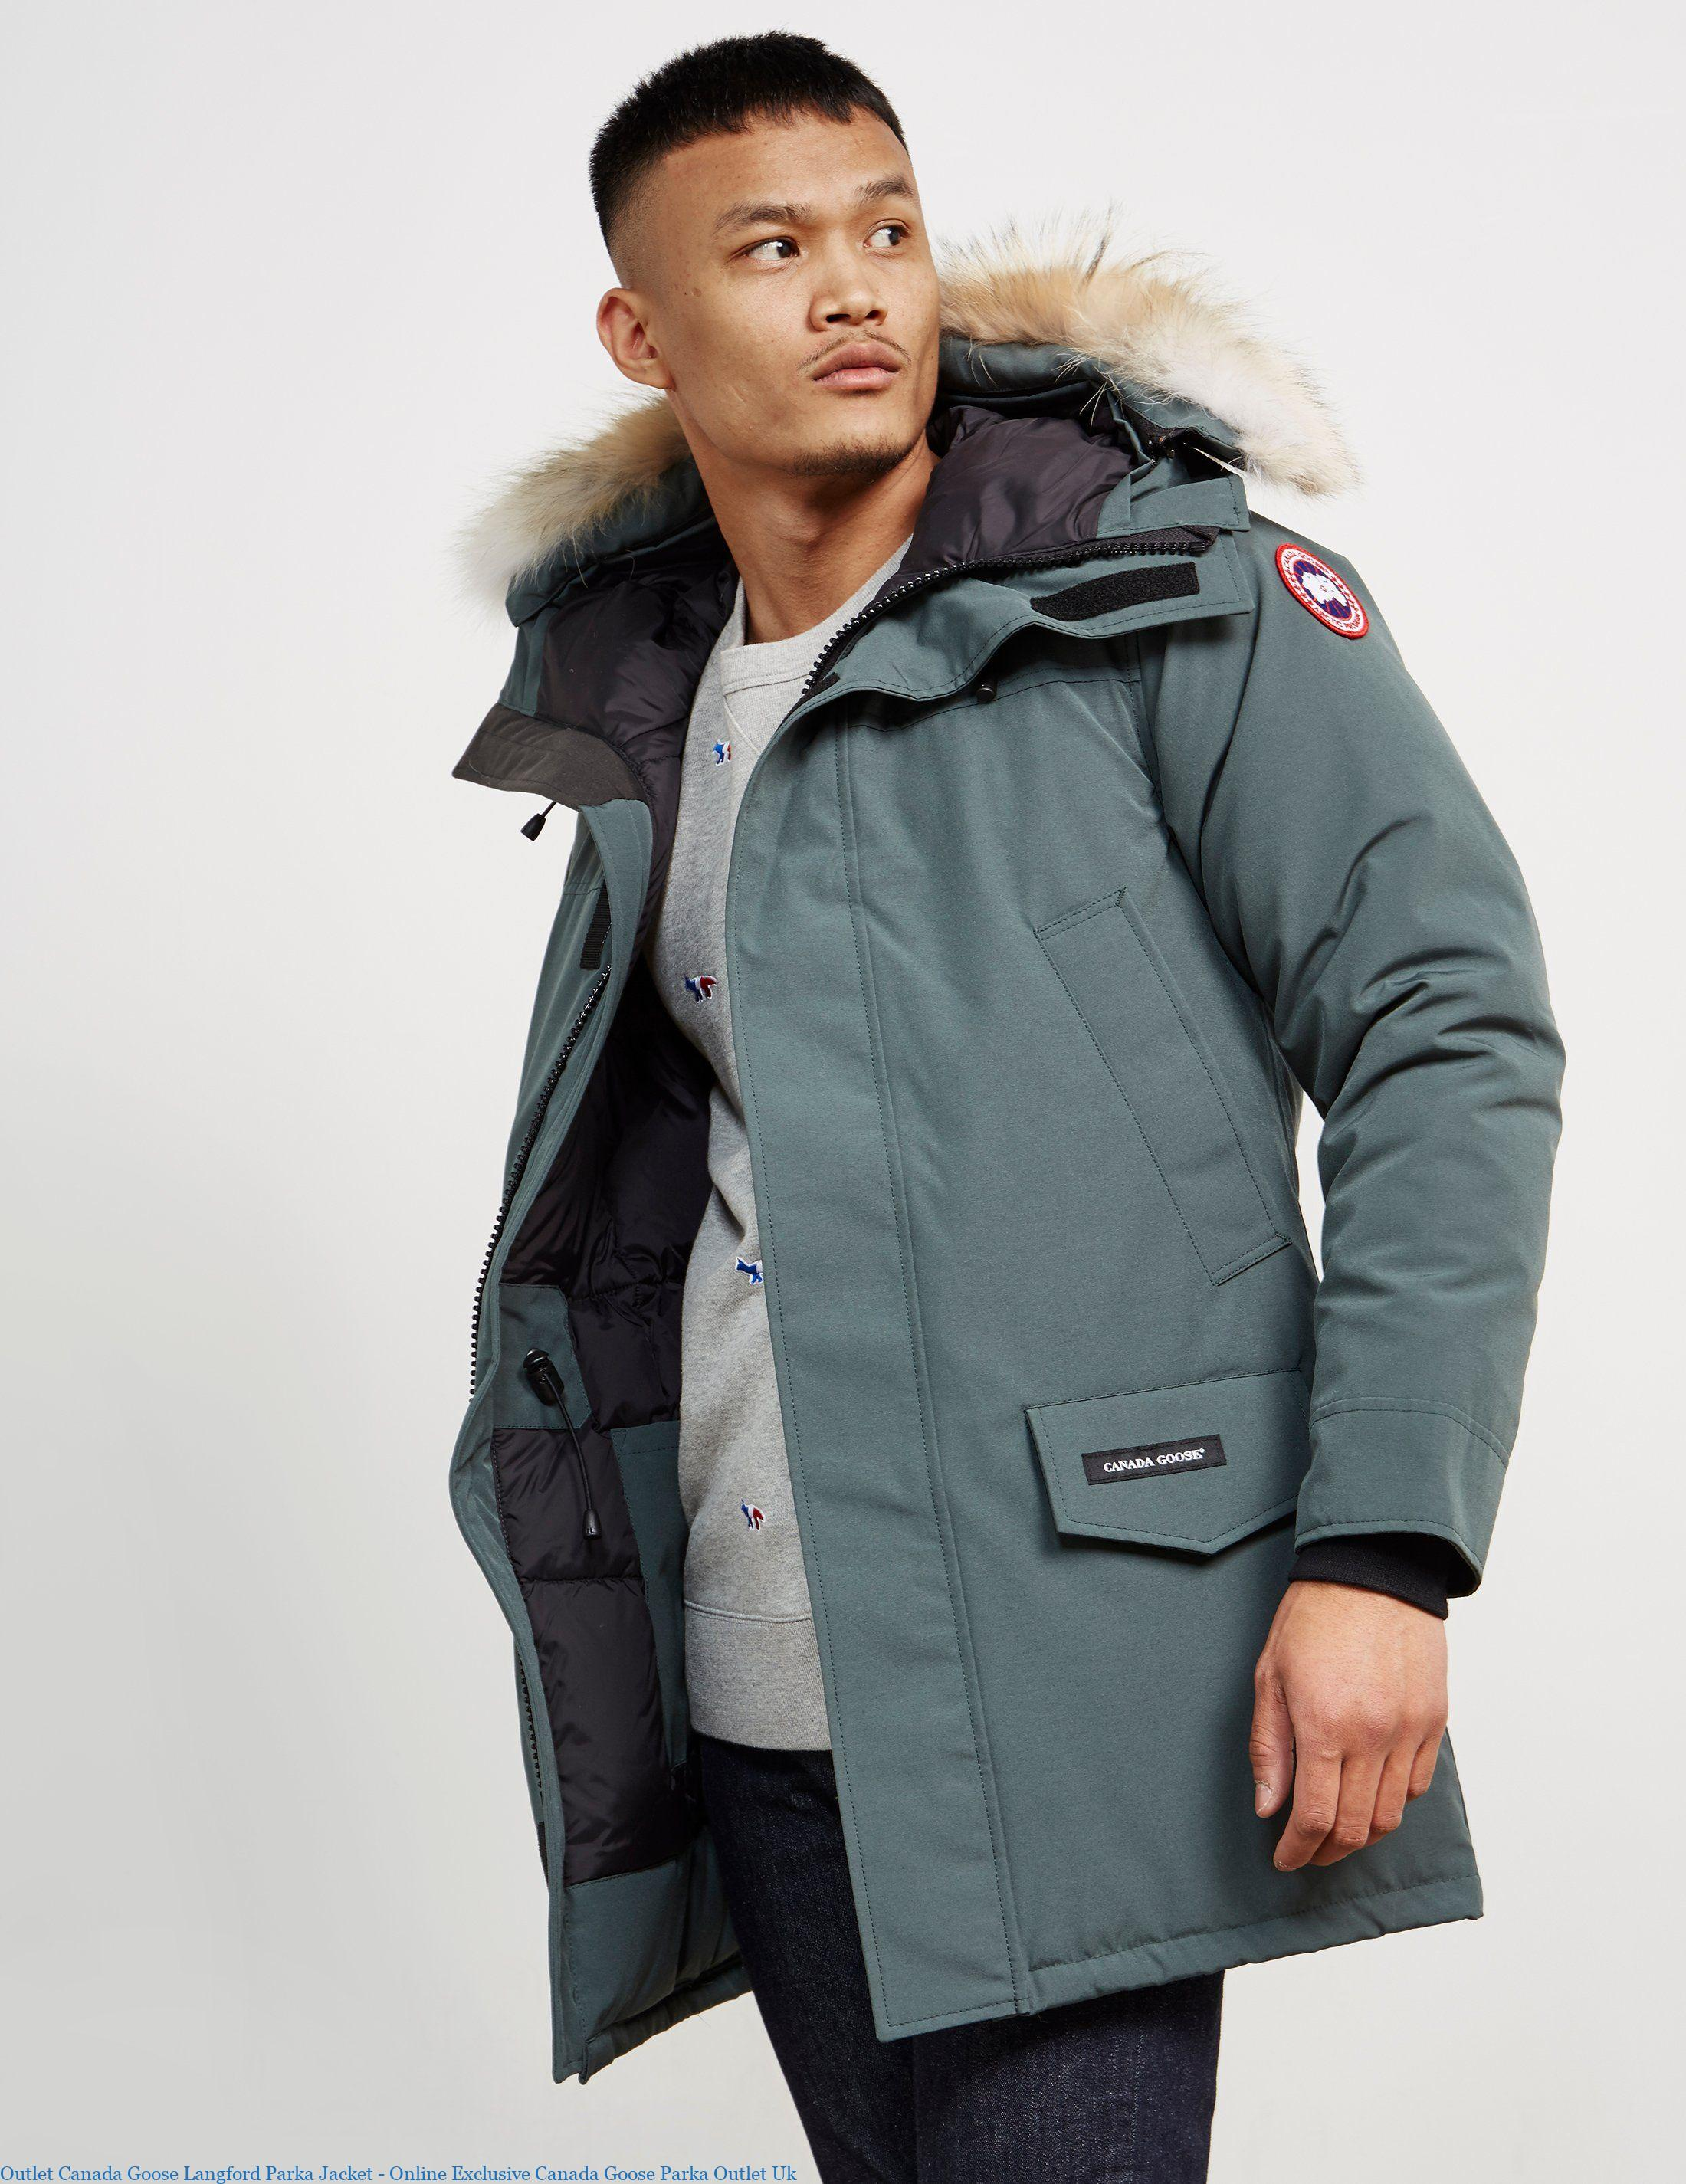 canada goose jackets online